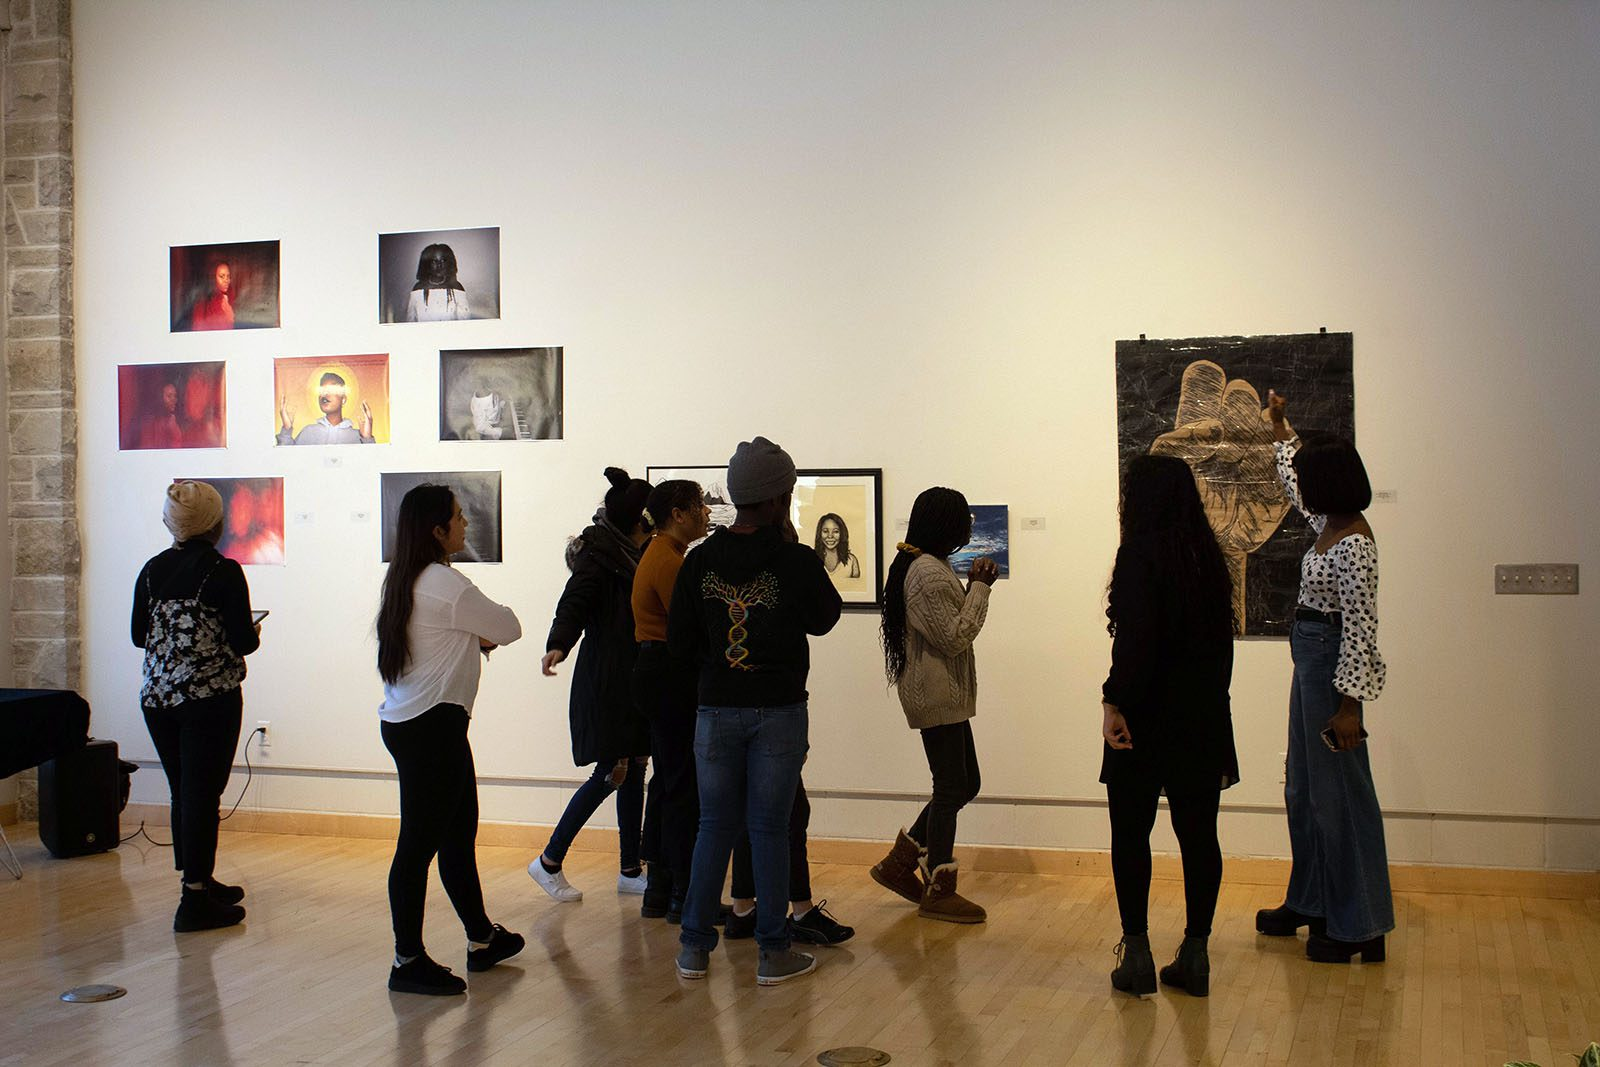 Students walk around a gallery with art on the white walls.